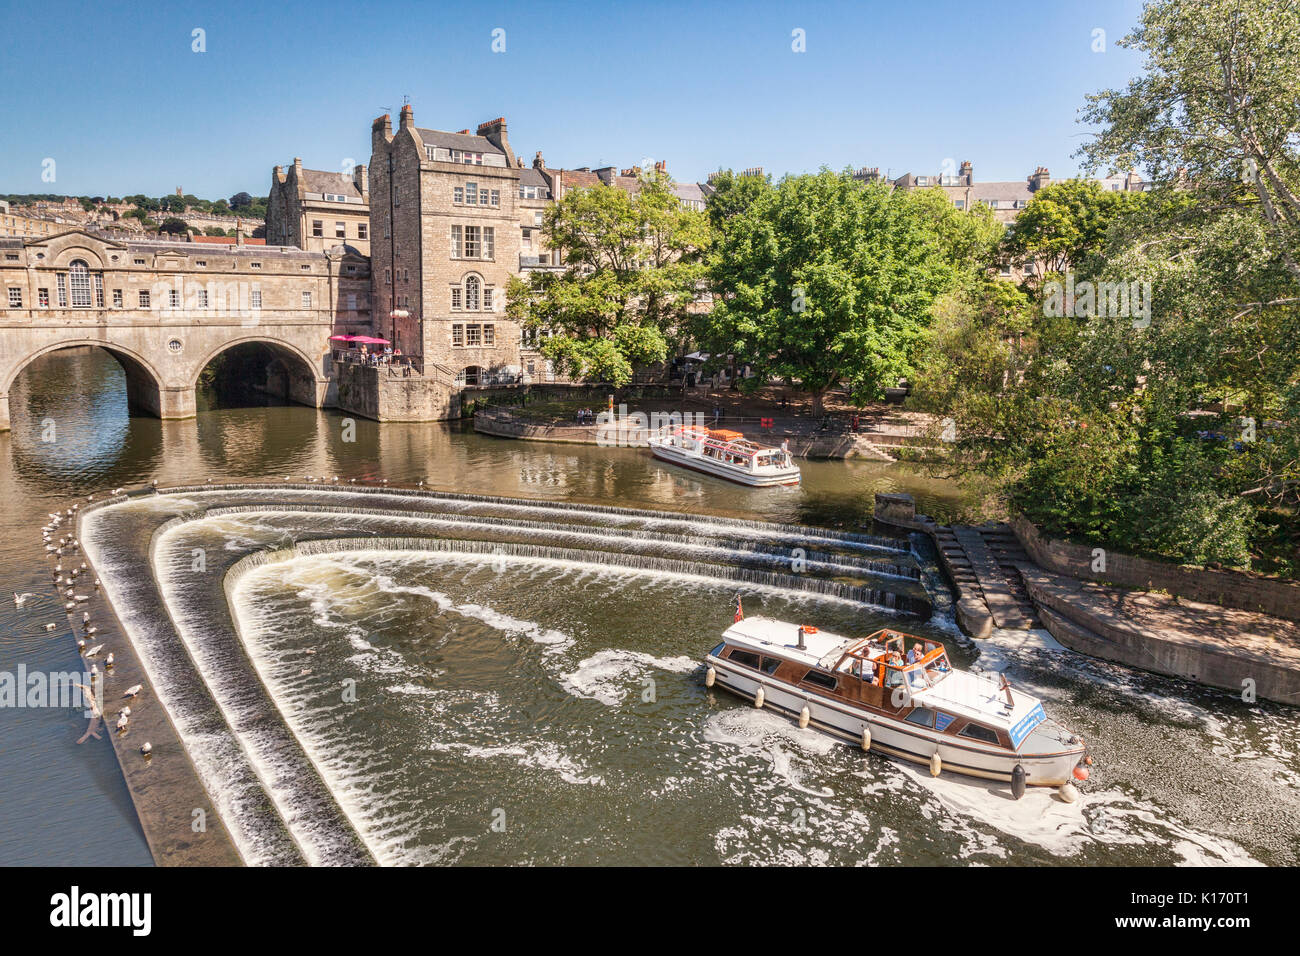 5 July 2017: Bath, Somerset, England, UK - Pleasure Boats at Pulteney Weir on the River Avon. Stock Photo